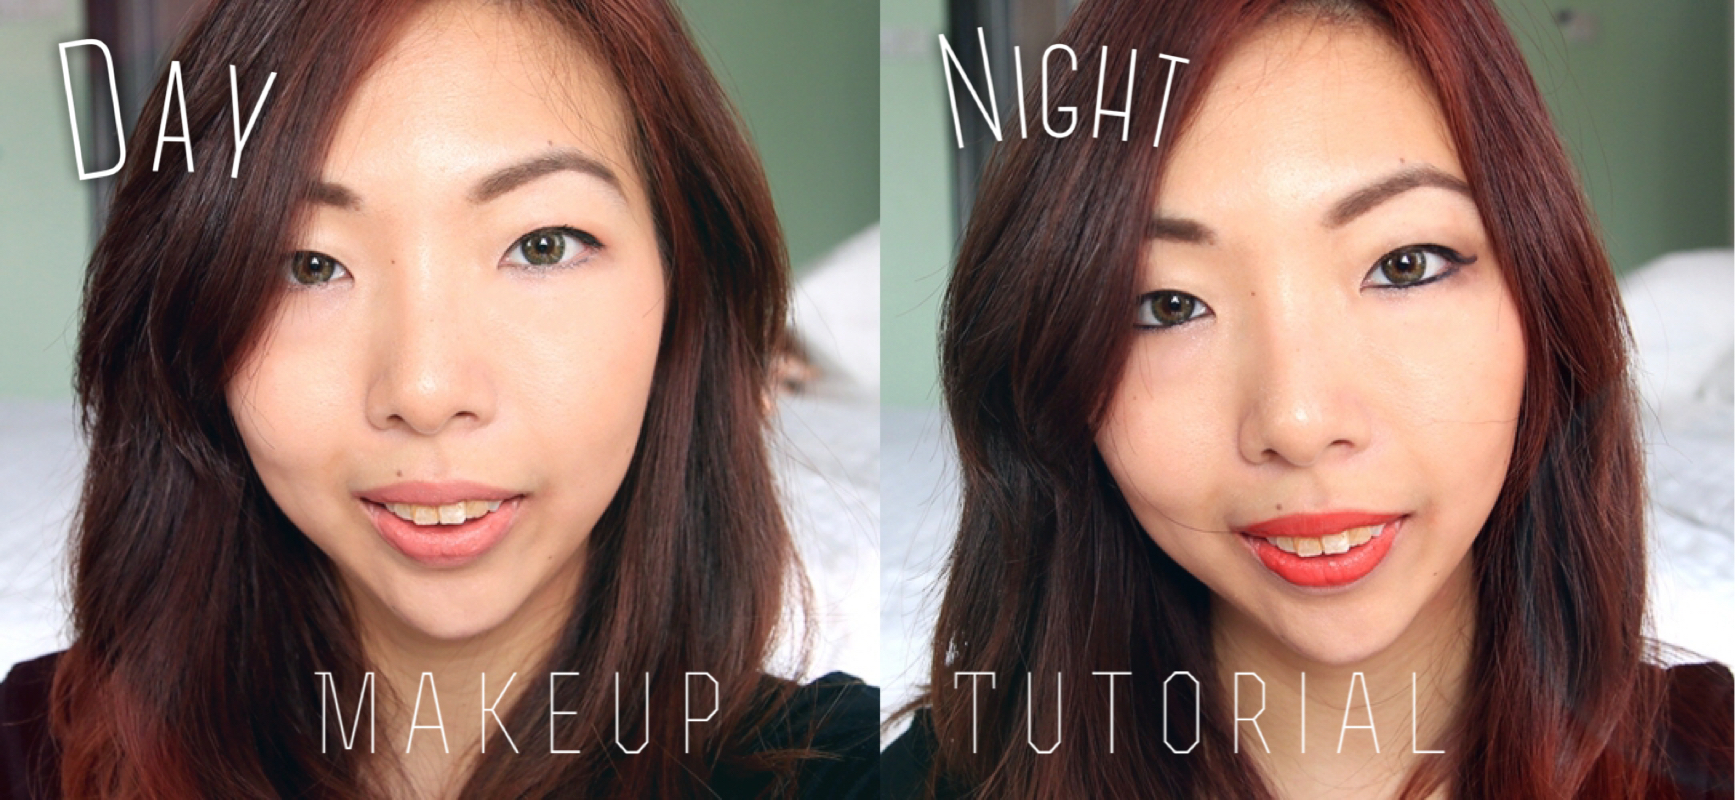 Day to Night Makeup Tutorial using Kiss Me Products